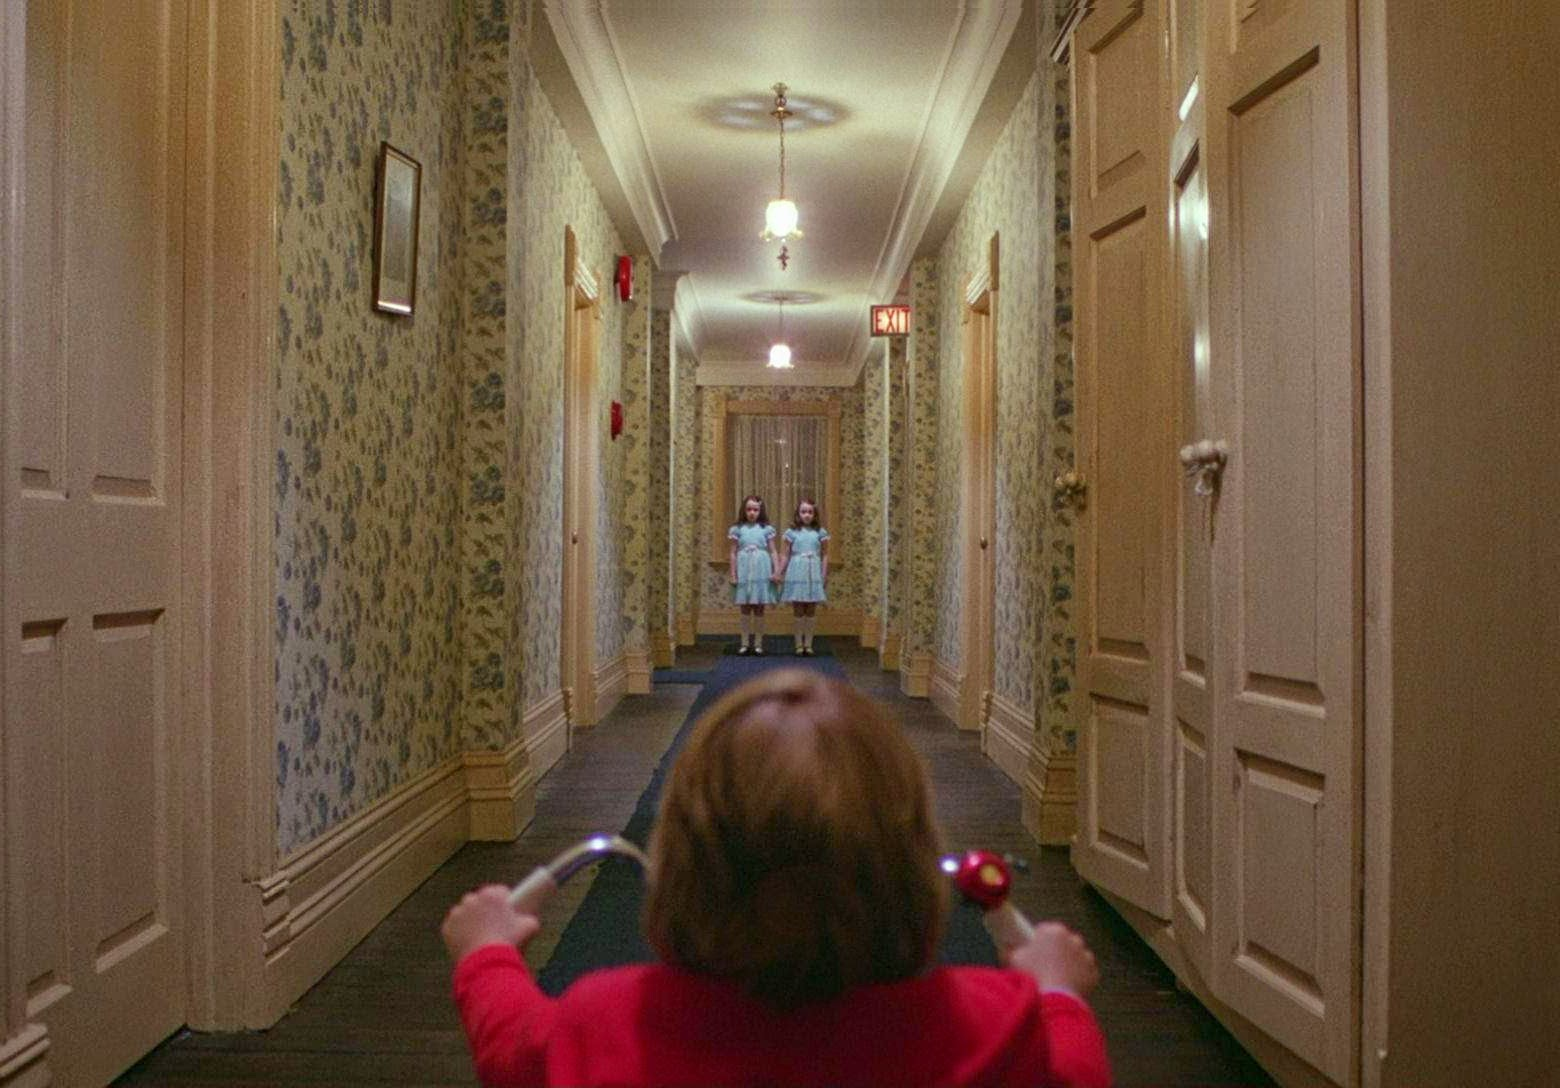 WATCH IKEA's Homage to The Shinning... This Halloween